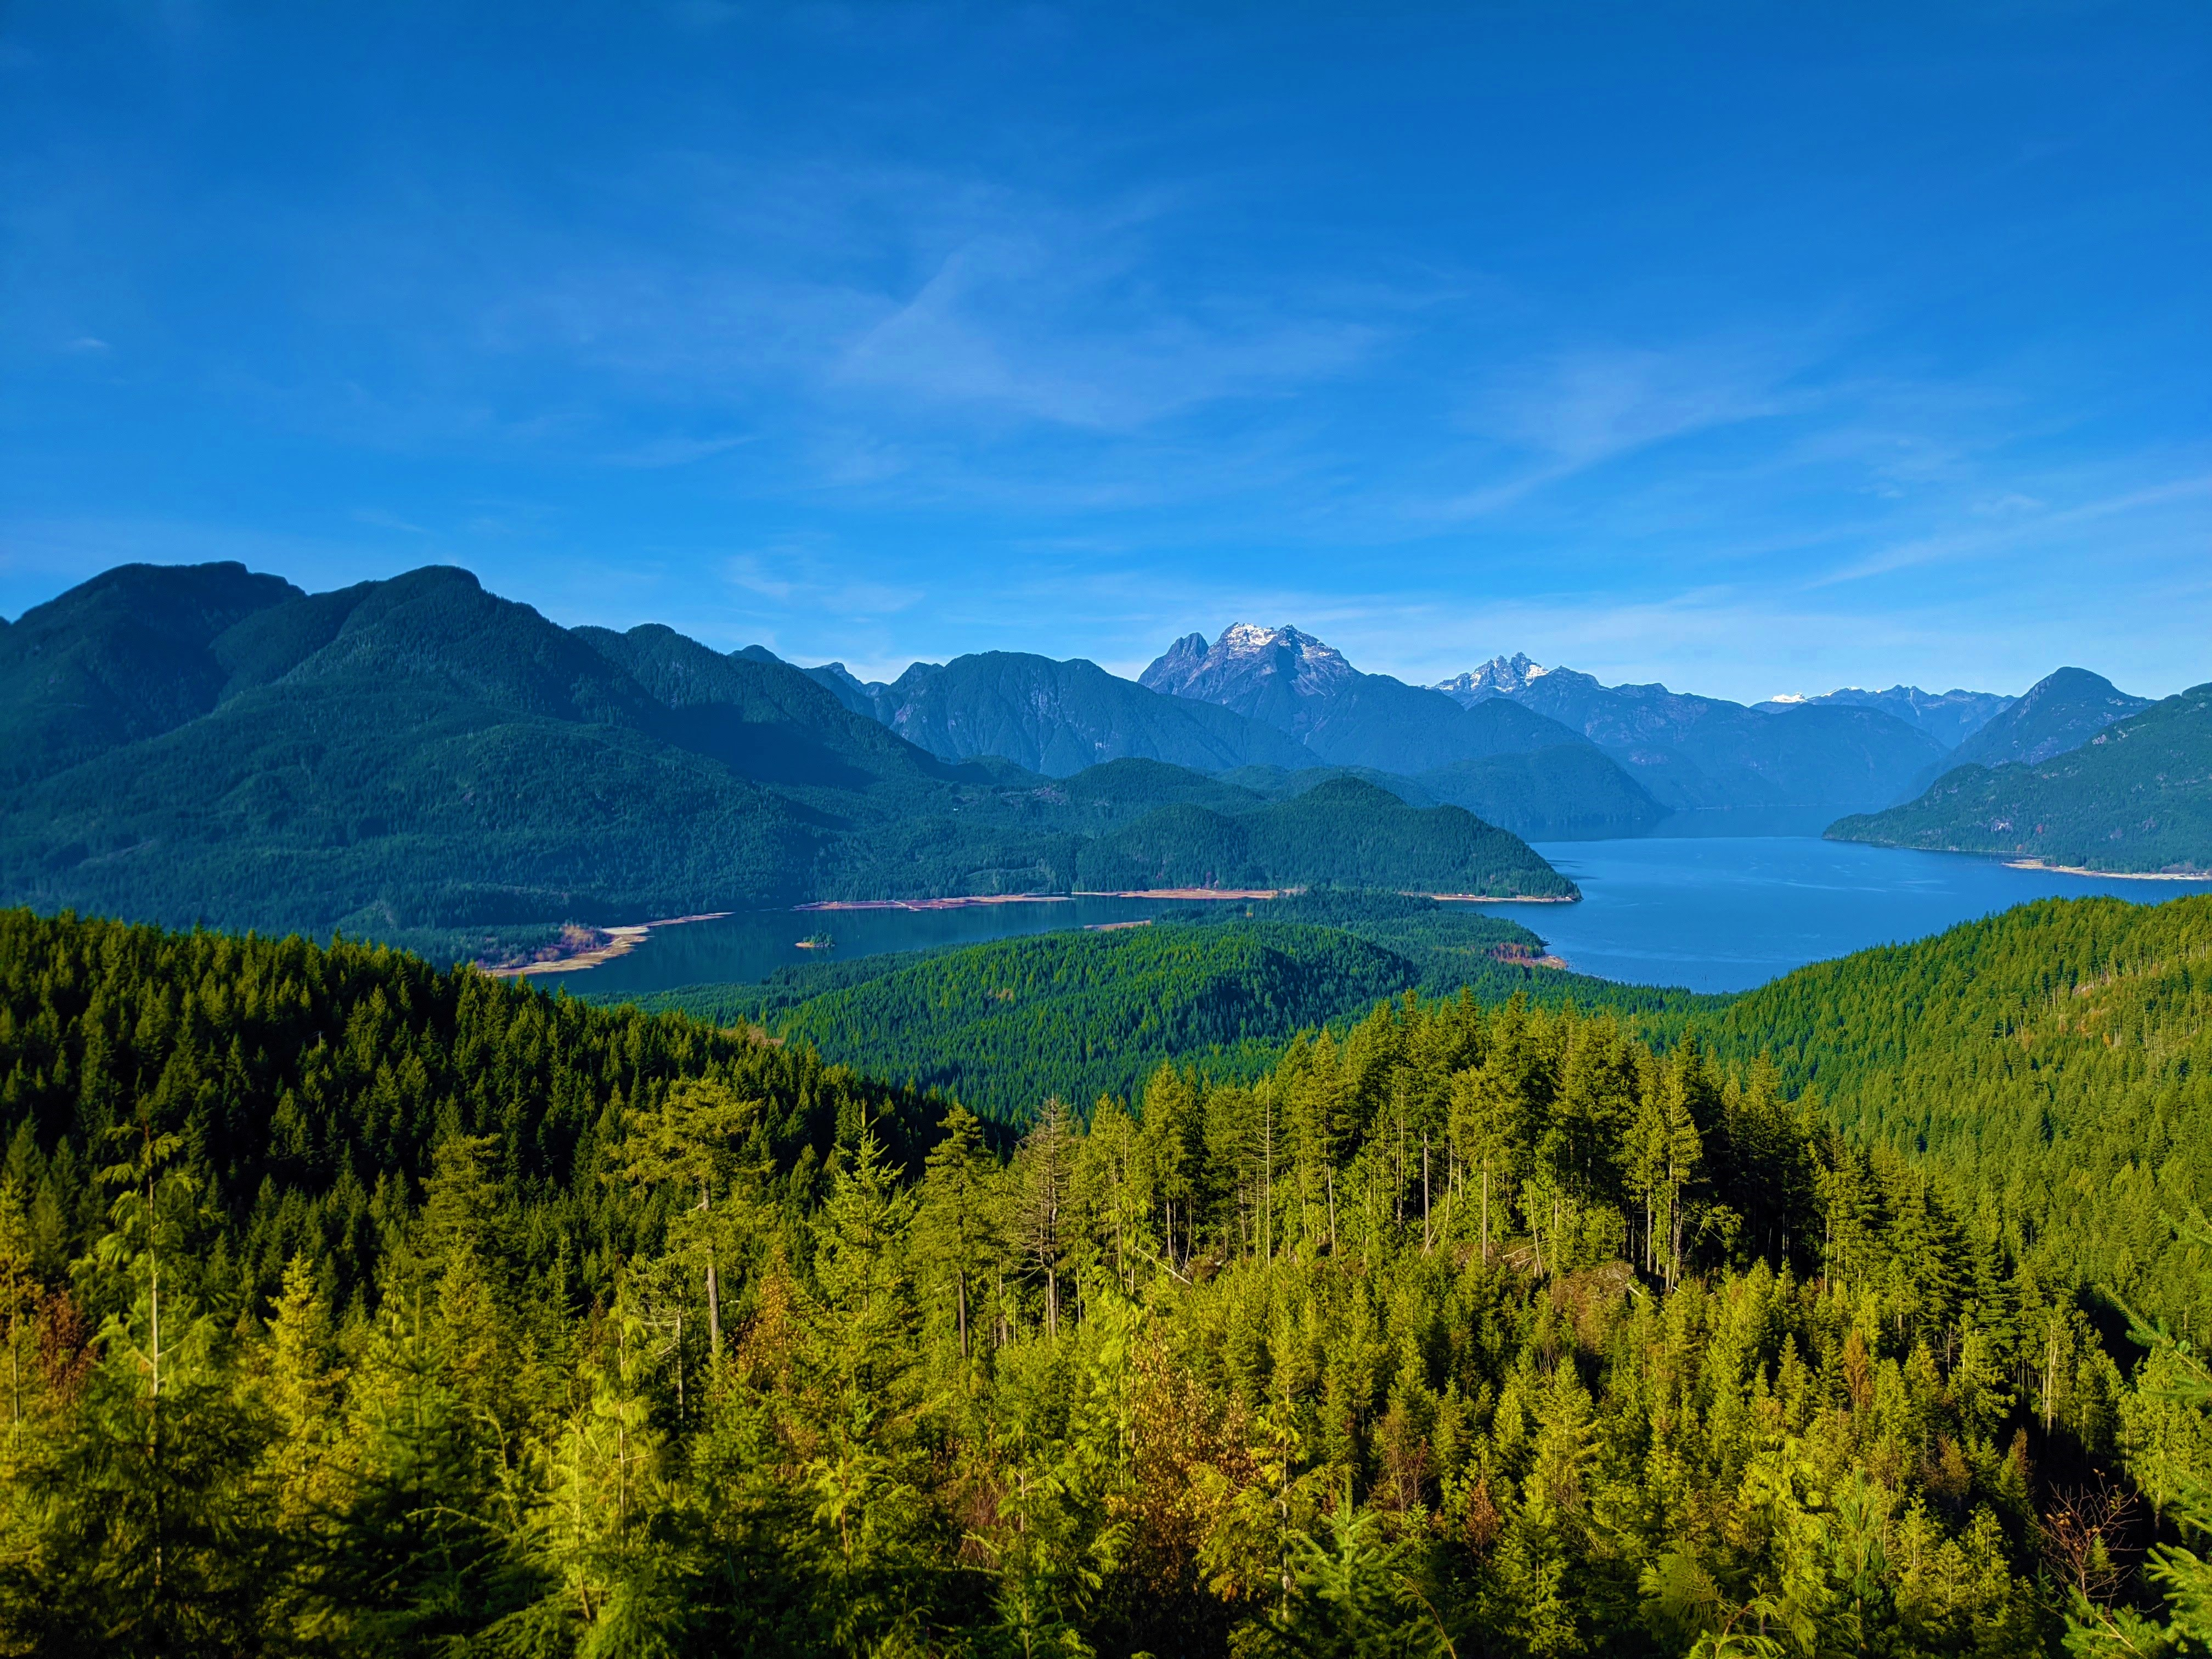 144707 download wallpaper Nature, Forest, Rivers, View From Above, Mountains, Landscape screensavers and pictures for free